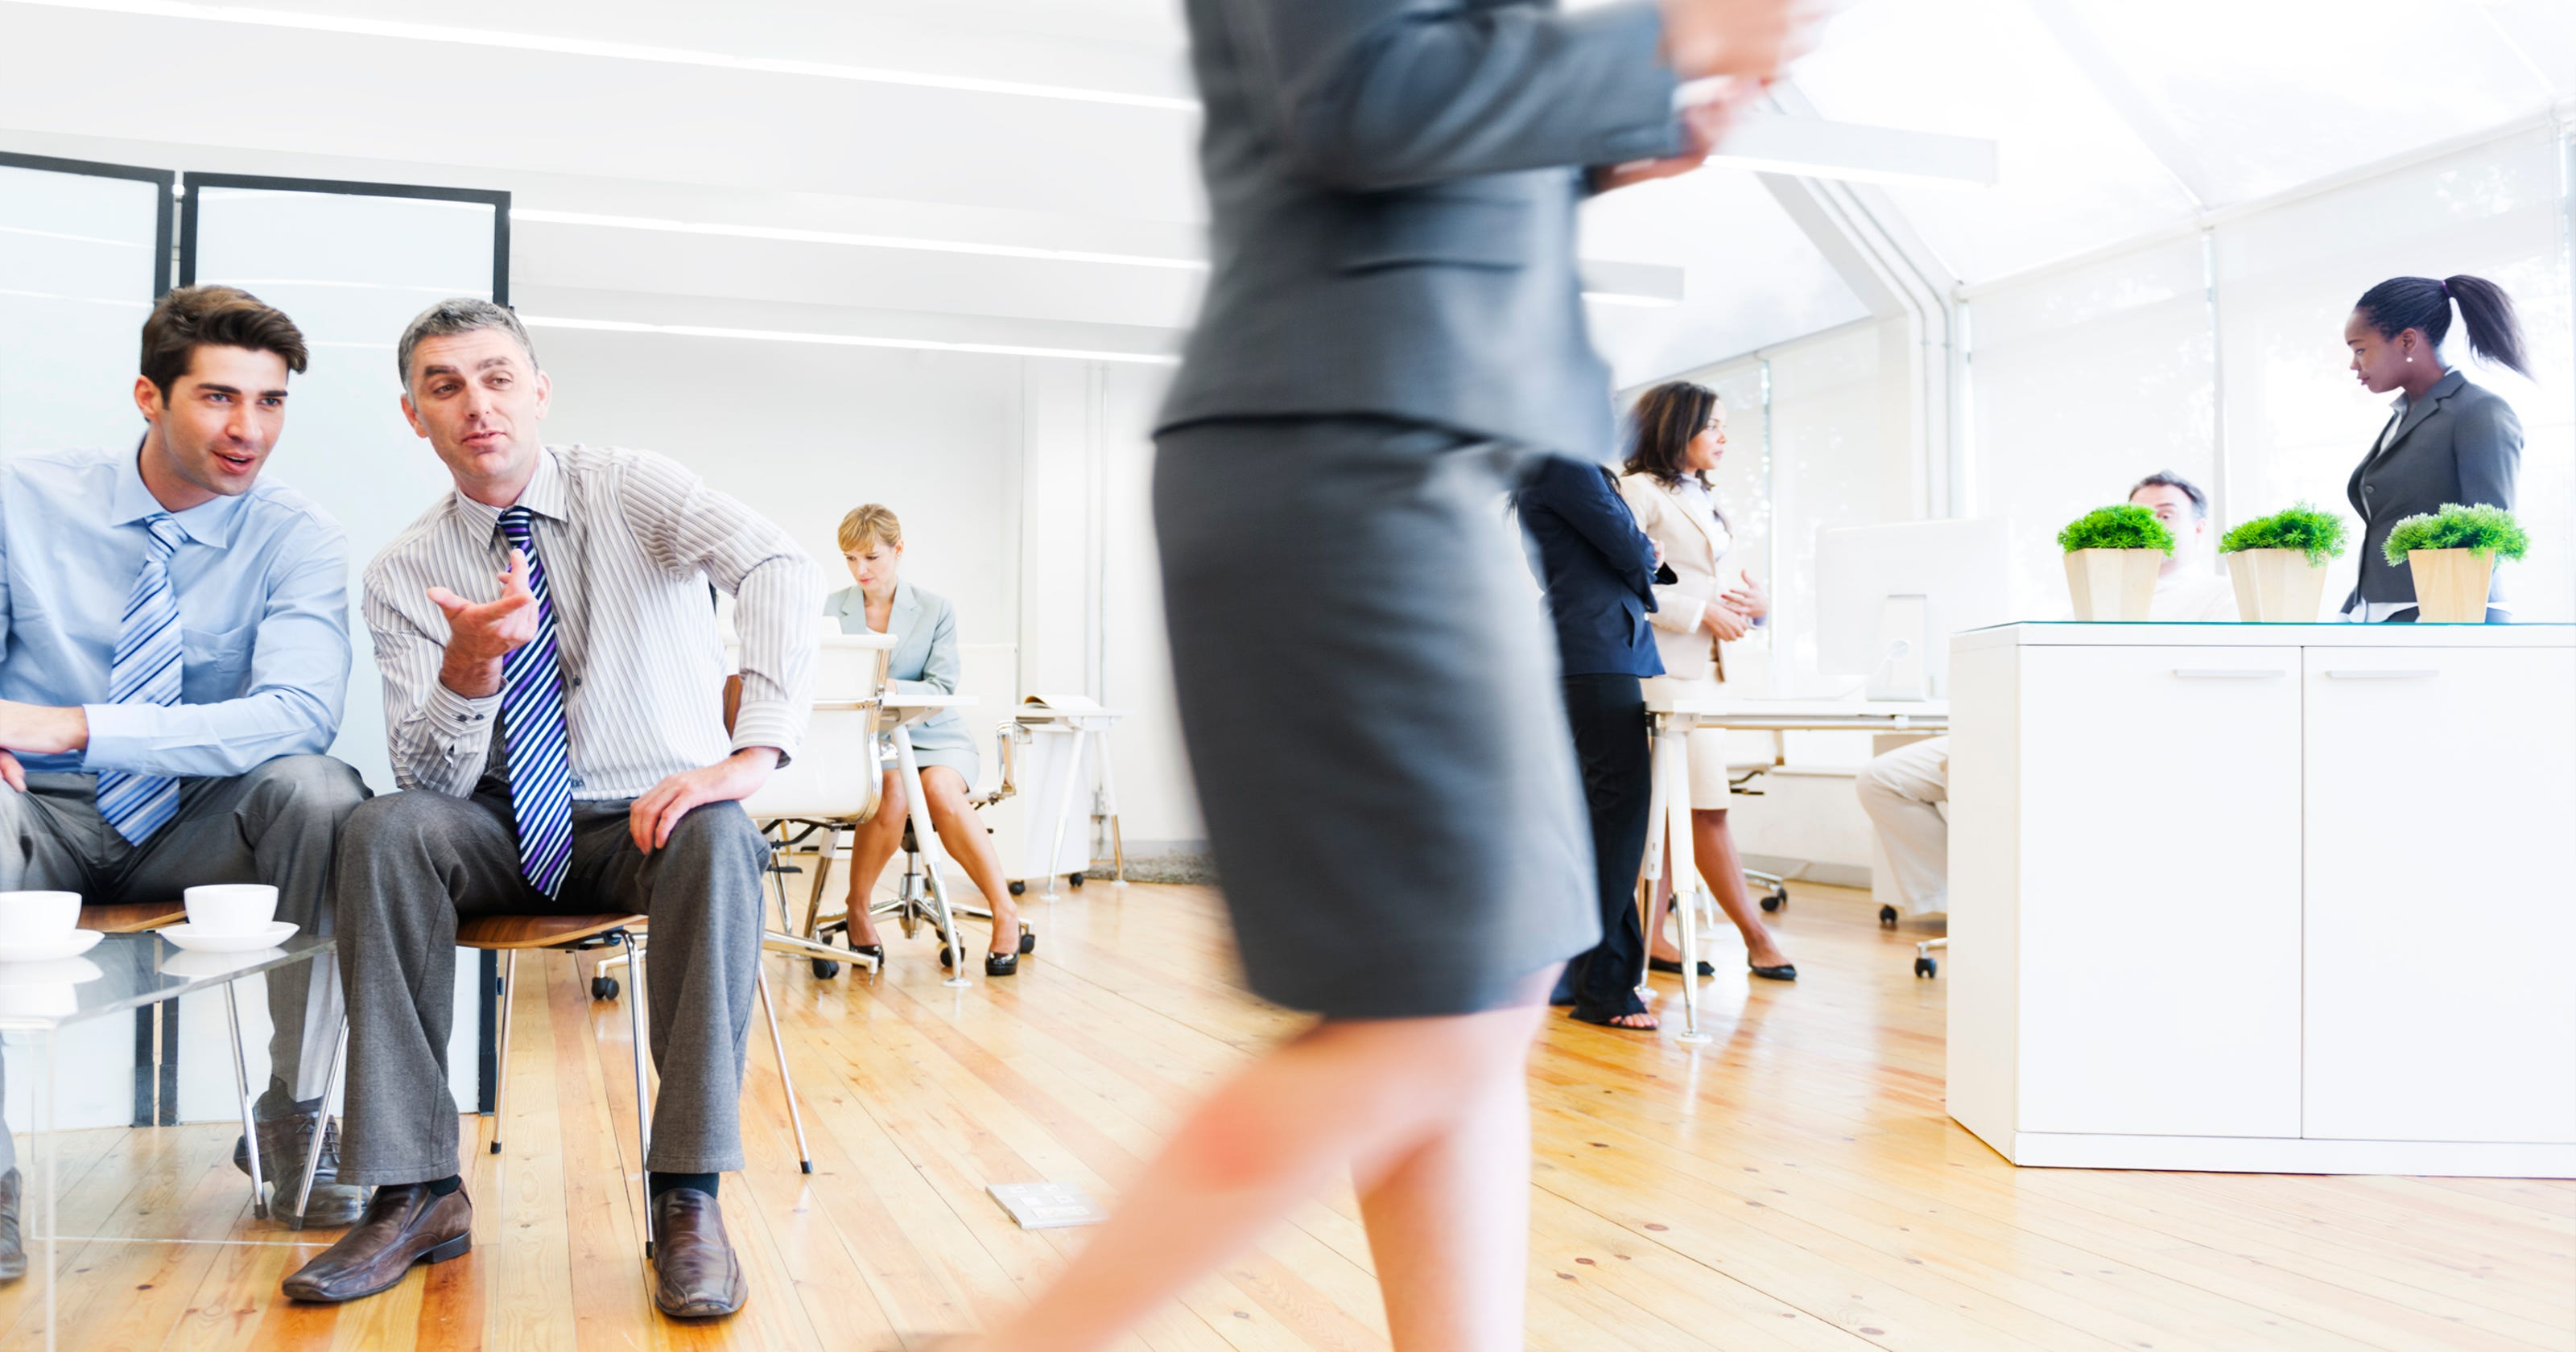 sexism in the workplace examples